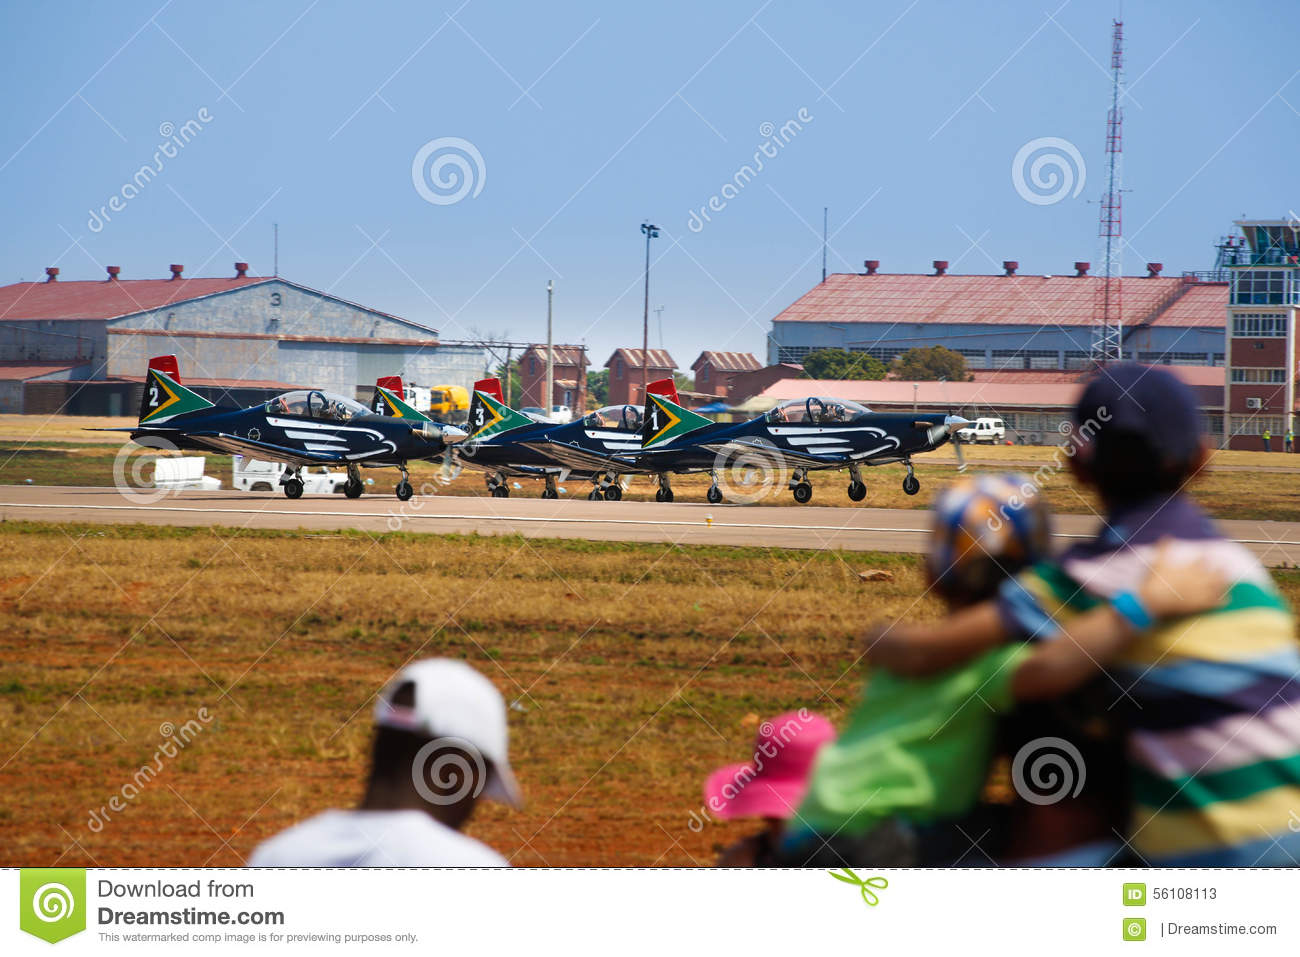 Children Watch Planes At Air Show Stock Image - Image of ...